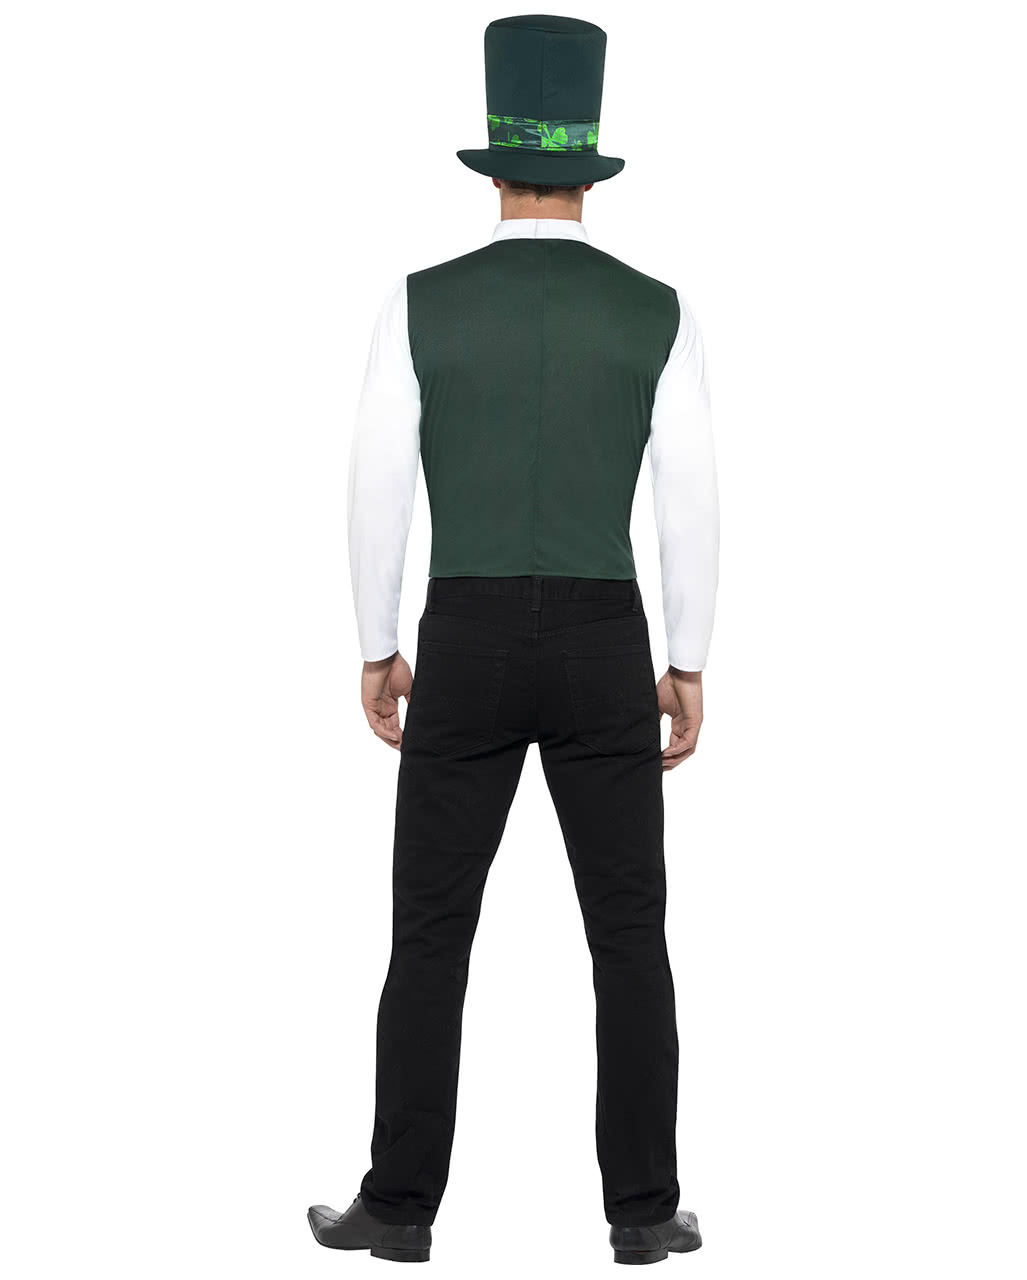 49cba4c722367 St. Patrick's Day costume with hat to order | horror-shop.com